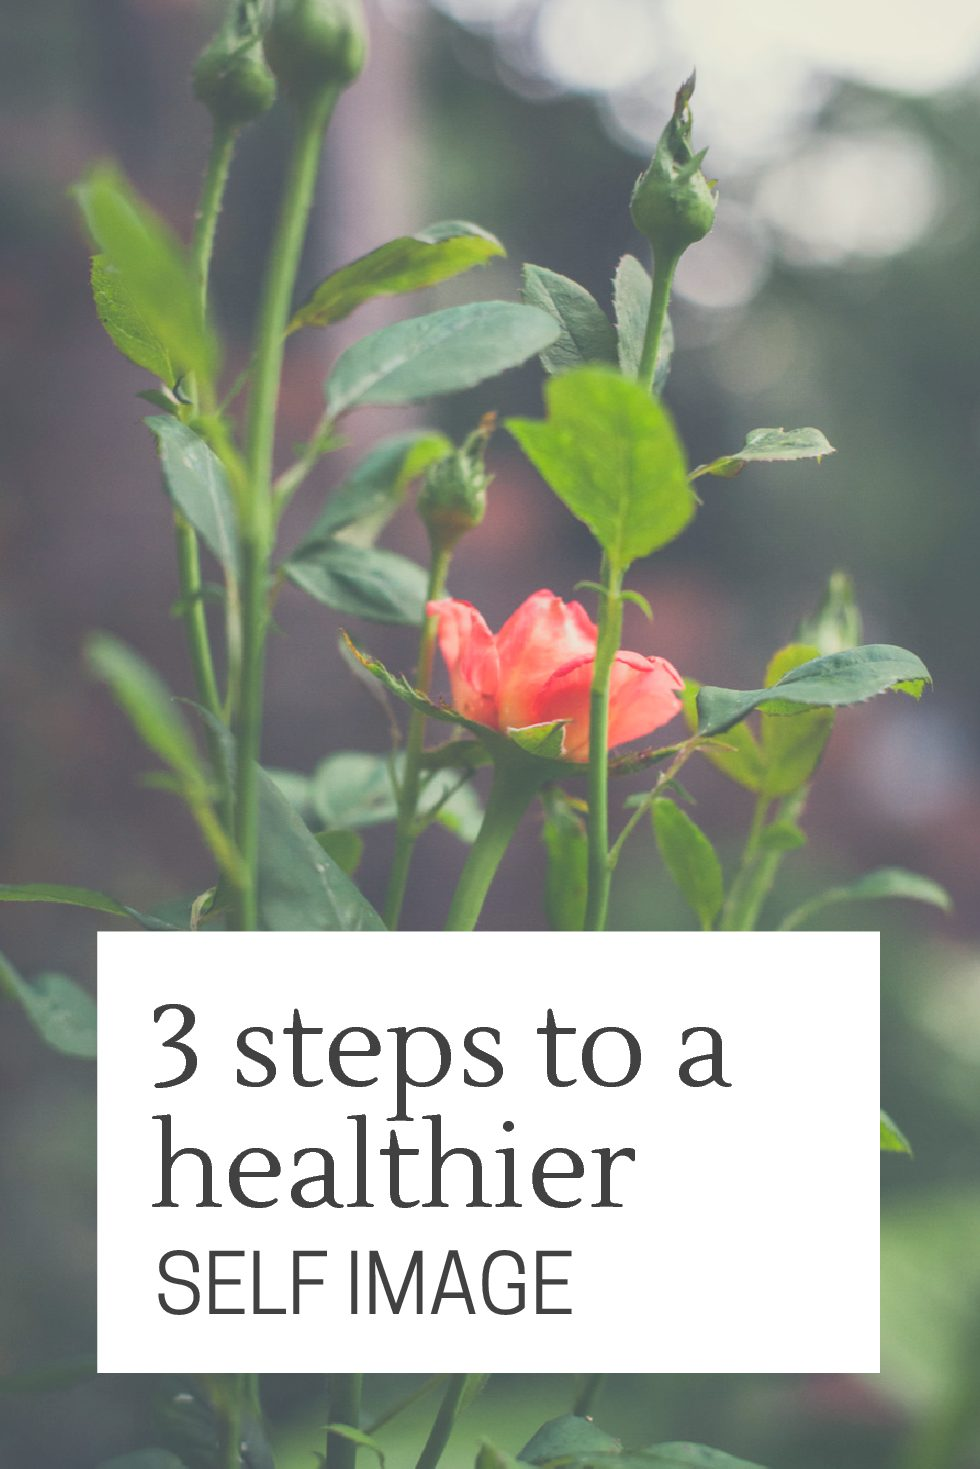 3 Steps to Have a Healthier Self Image